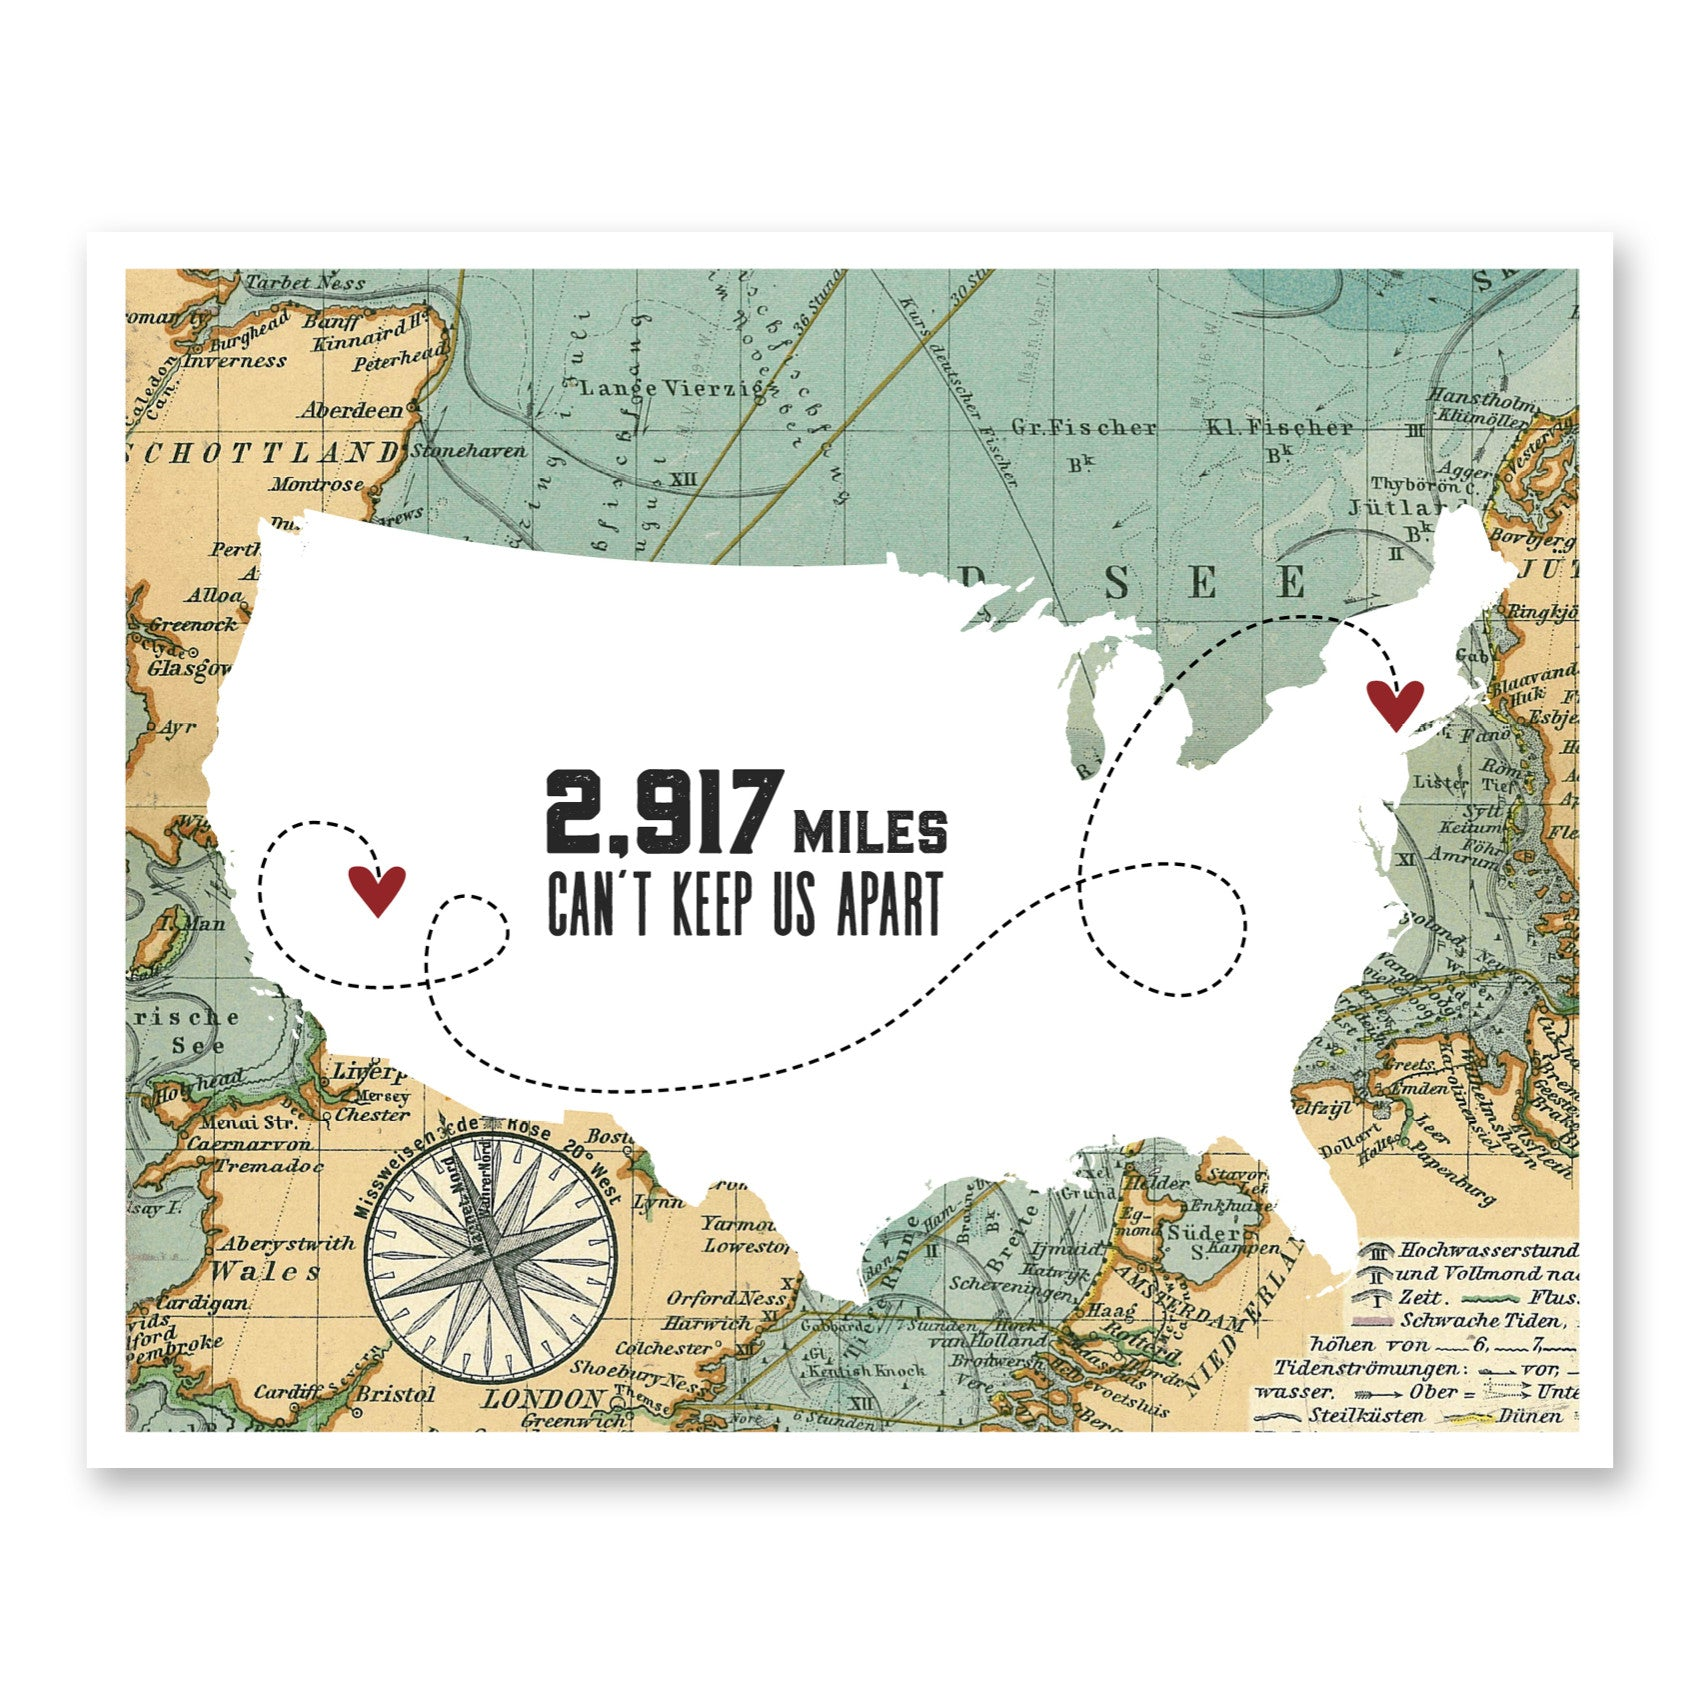 Vintage Long Distance Map on time differences on a map, miles on a map, circumference on a map, destination on a map, curve on a map, intermediate on a map, timing on a map, map on a map, type on a map, movement on a map, degree on a map, graph on a map, home on a map, elevation on a map, directions on a map, centrality on a map, human on a map, arms on a map, course on a map, stars on a map,